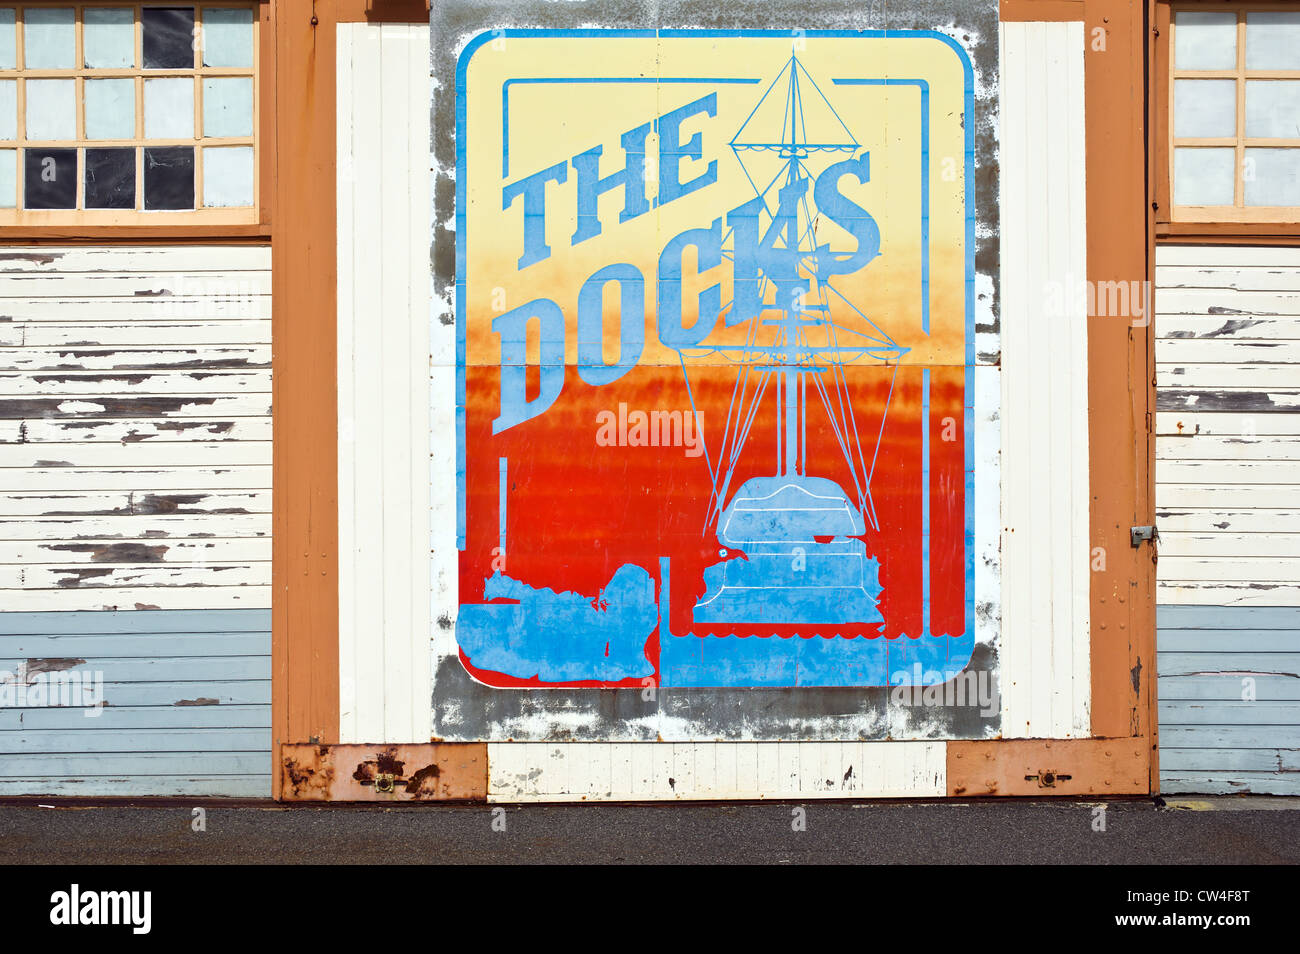 Fremantle Western Australia - A graphic art design painted on the door of a wooden building in the Port of Fremantle - Stock Image